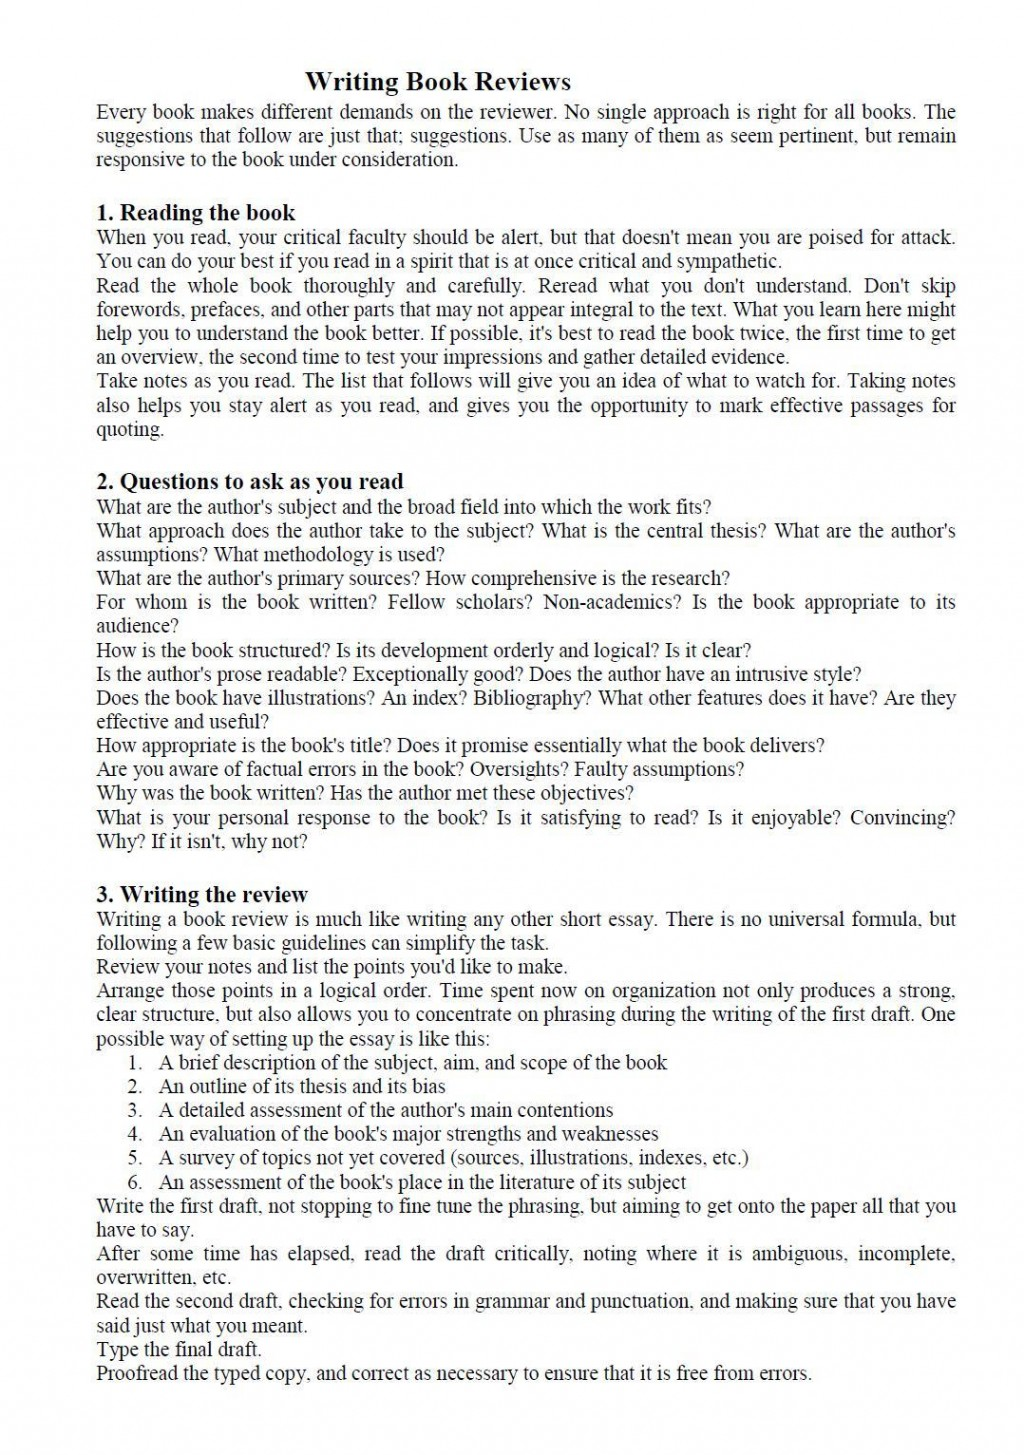 011 Grab My Essay Review Example Writing Reviews How Write Book College Application For Free Common App Can Someone Peer And Correct It Fantastic Large